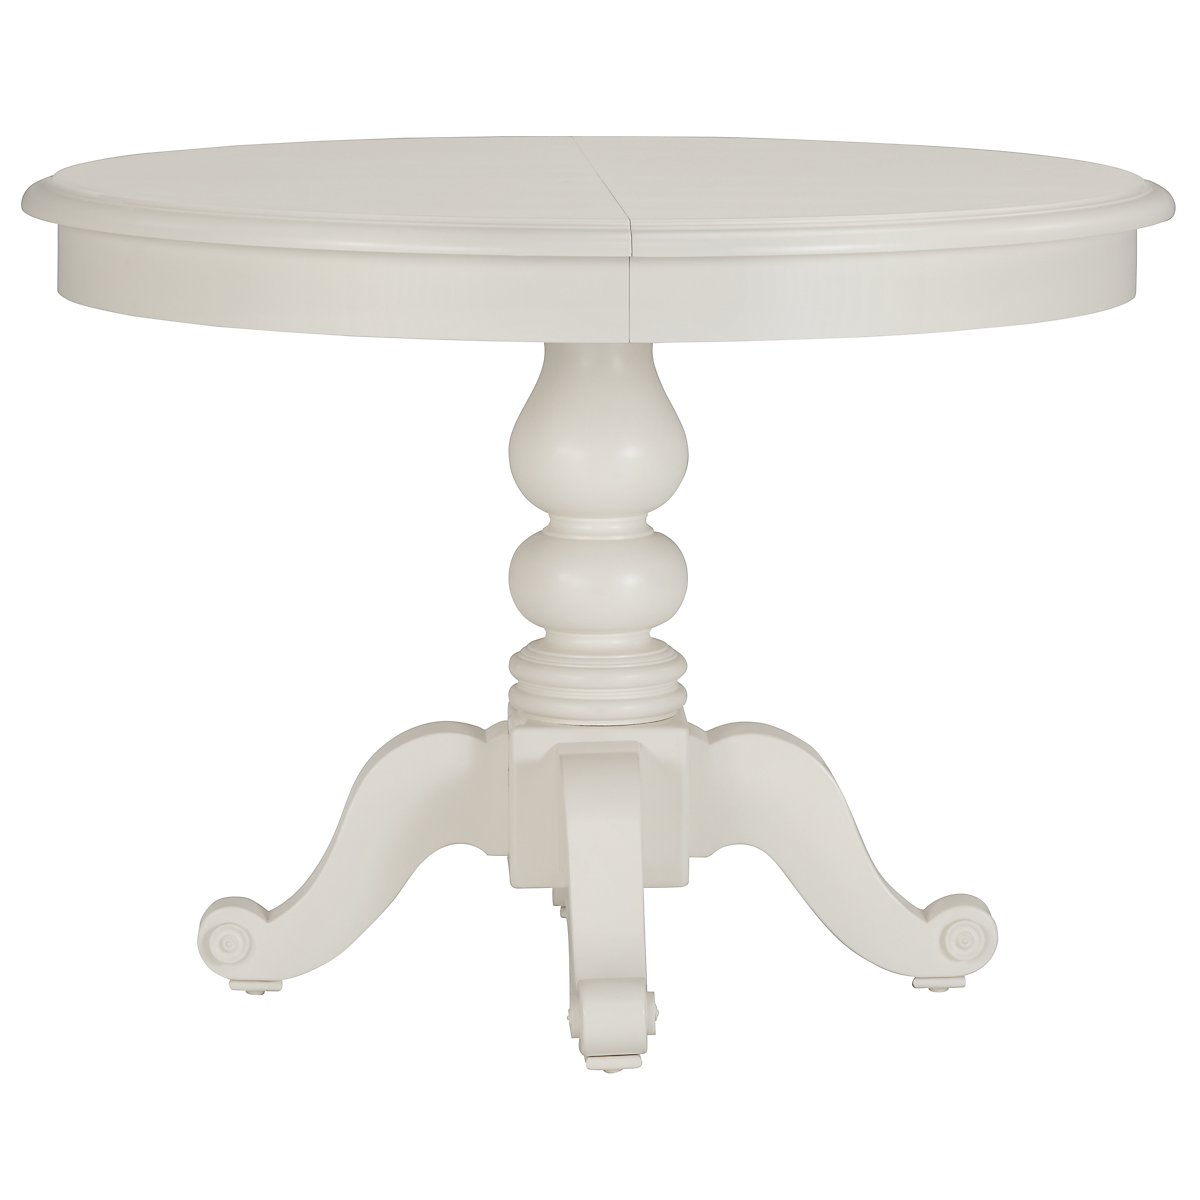 City Furniture Quinn White Round Table - White pedestal table with leaf